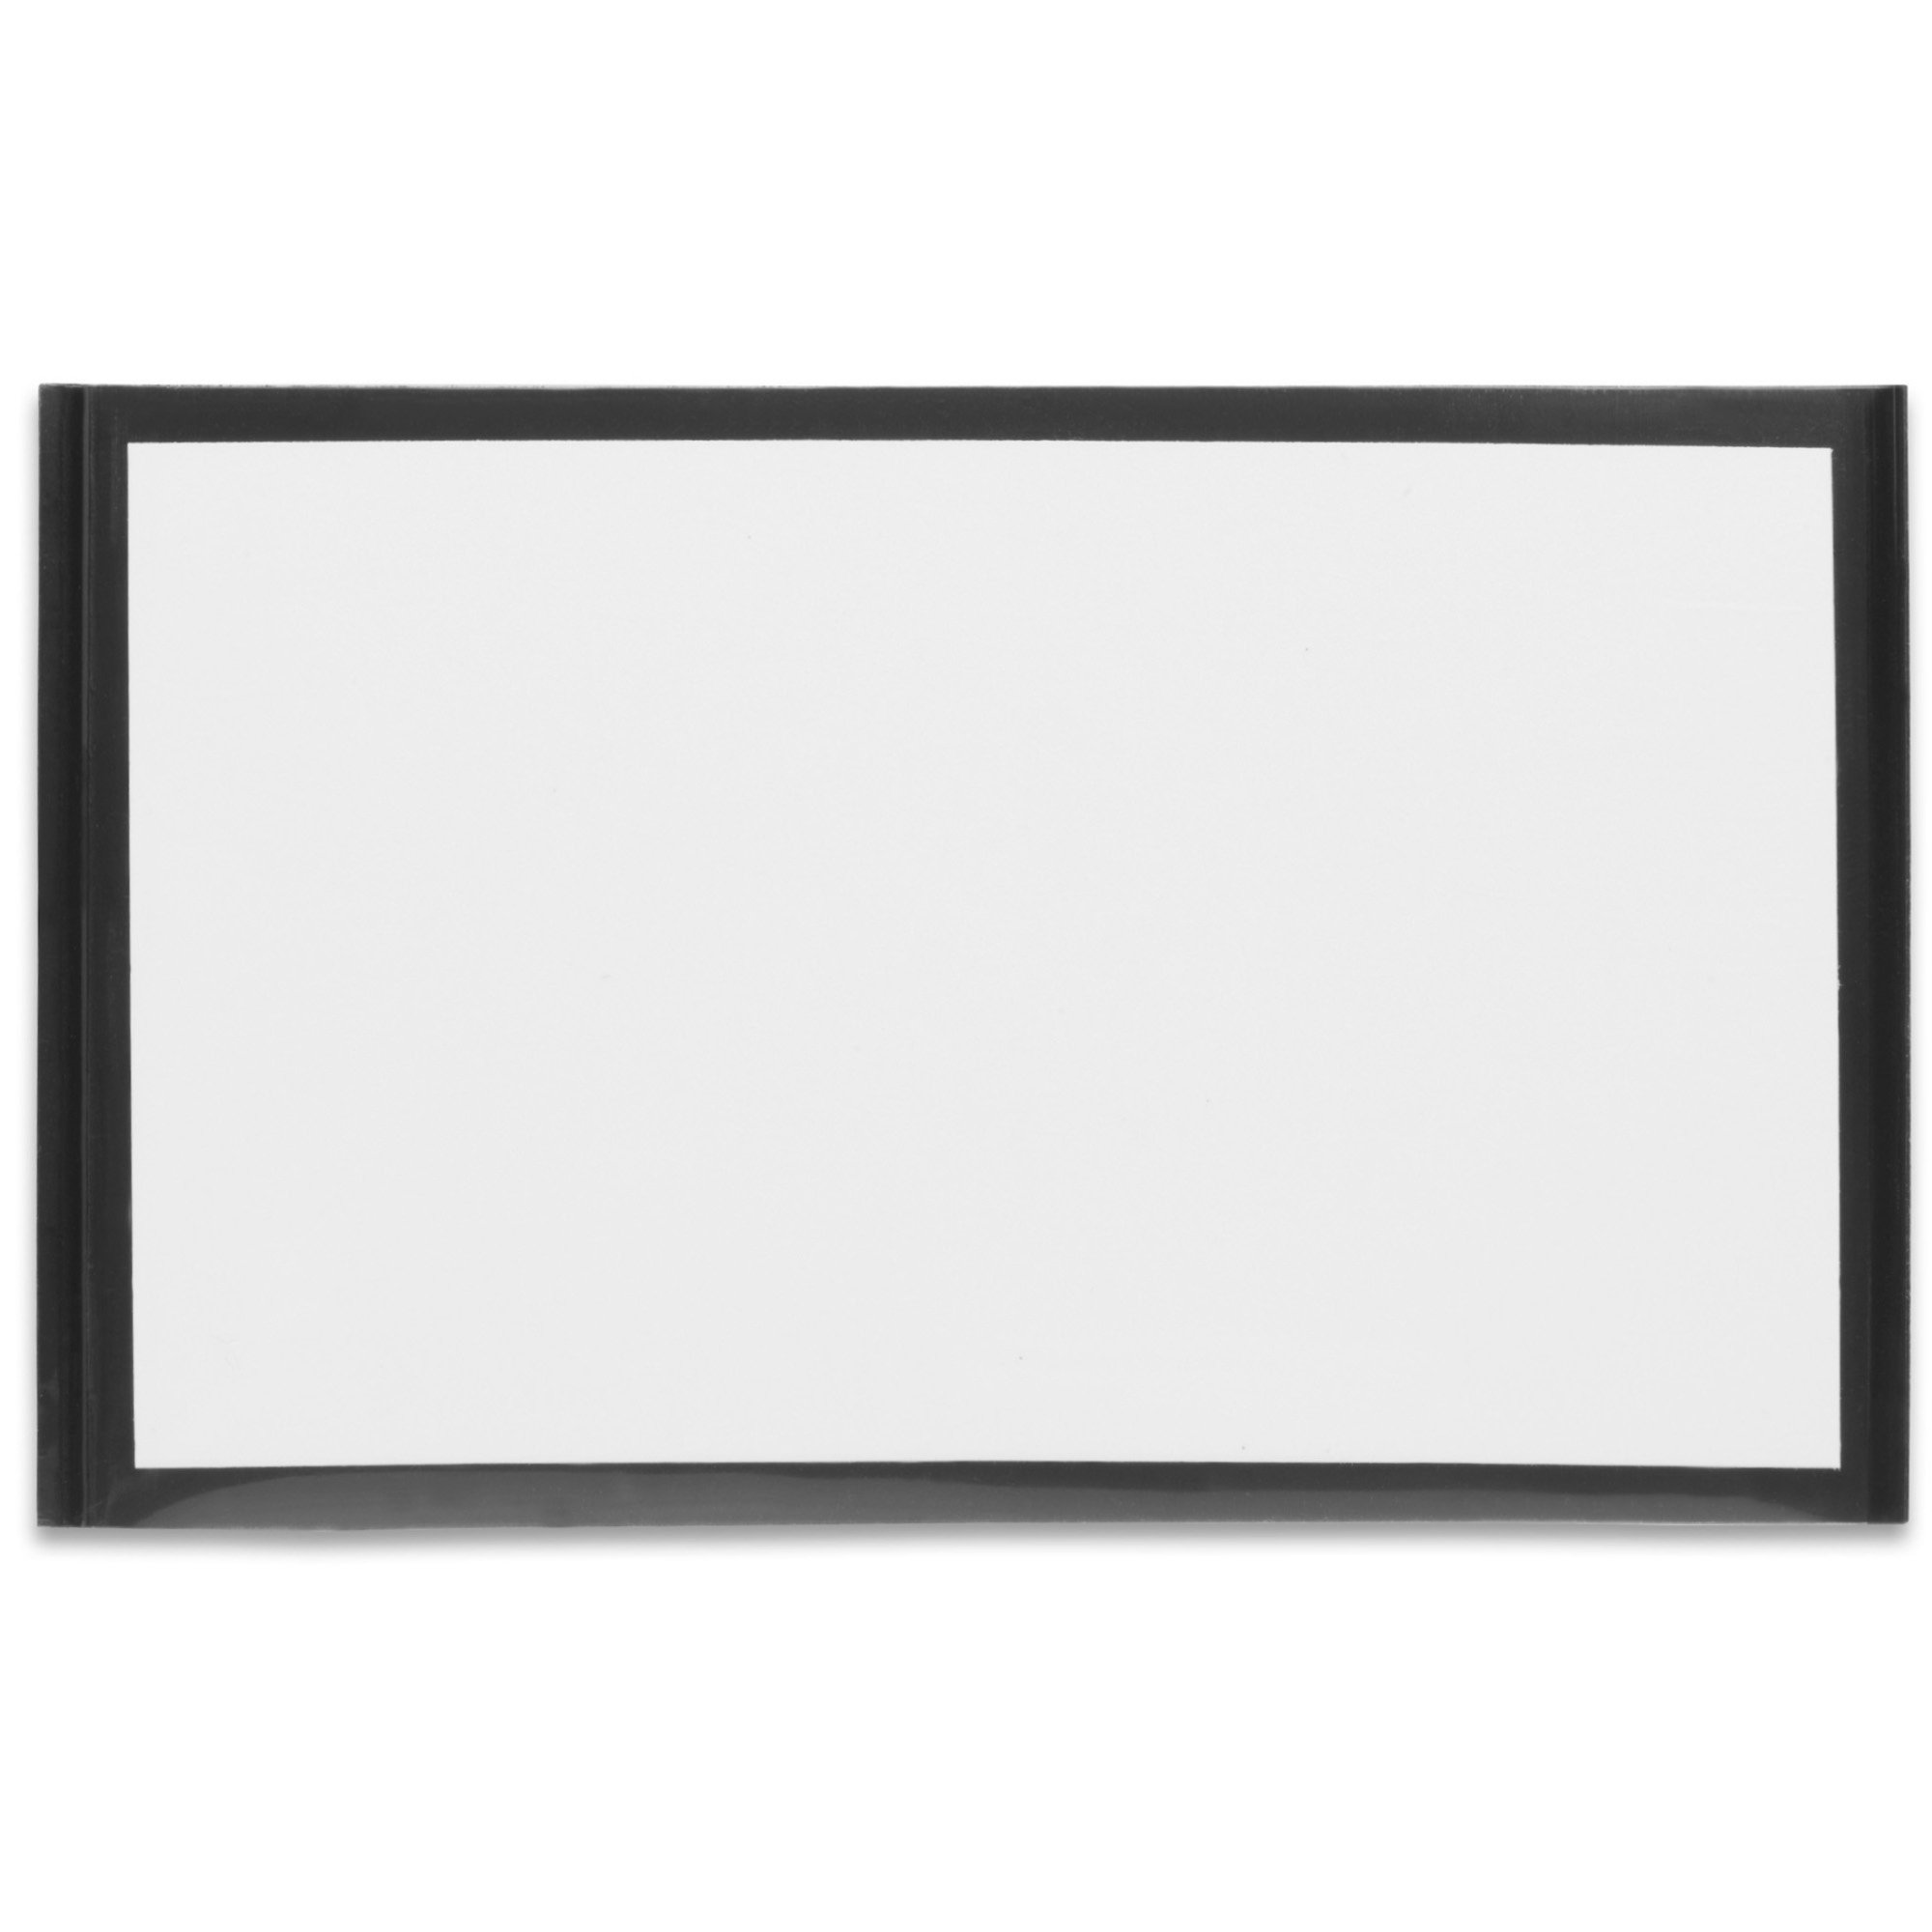 Tatco Magnetic Label Holders, 3 3/8in. x 5 3/8in, Black/White, Pack Of 10